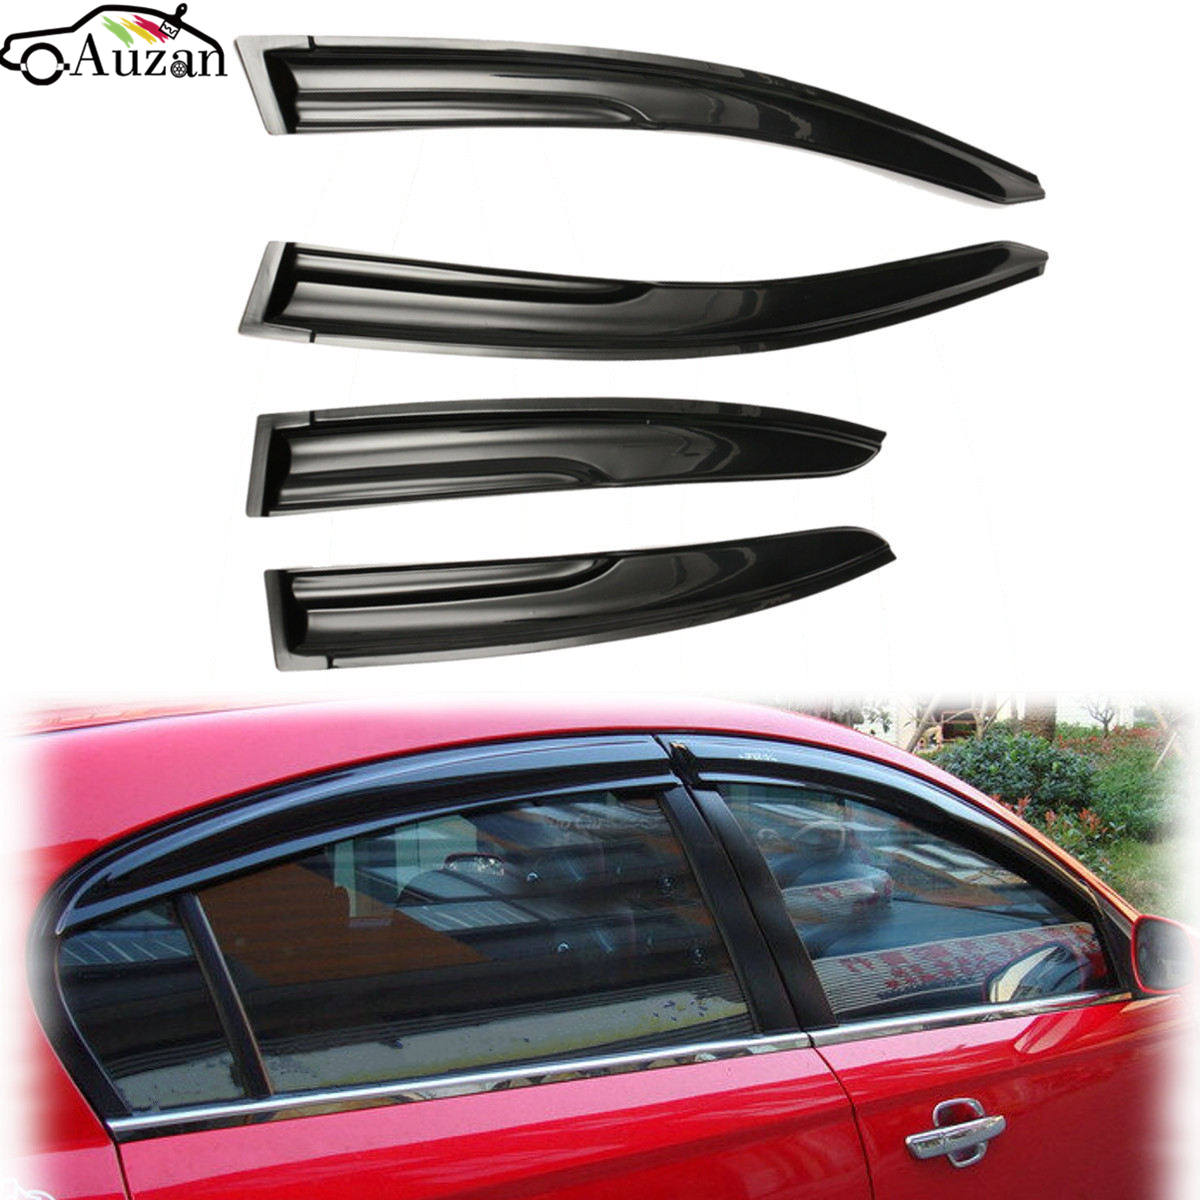 4pcs window visor shade vent rain deflector cover for honda civic 2012 2014